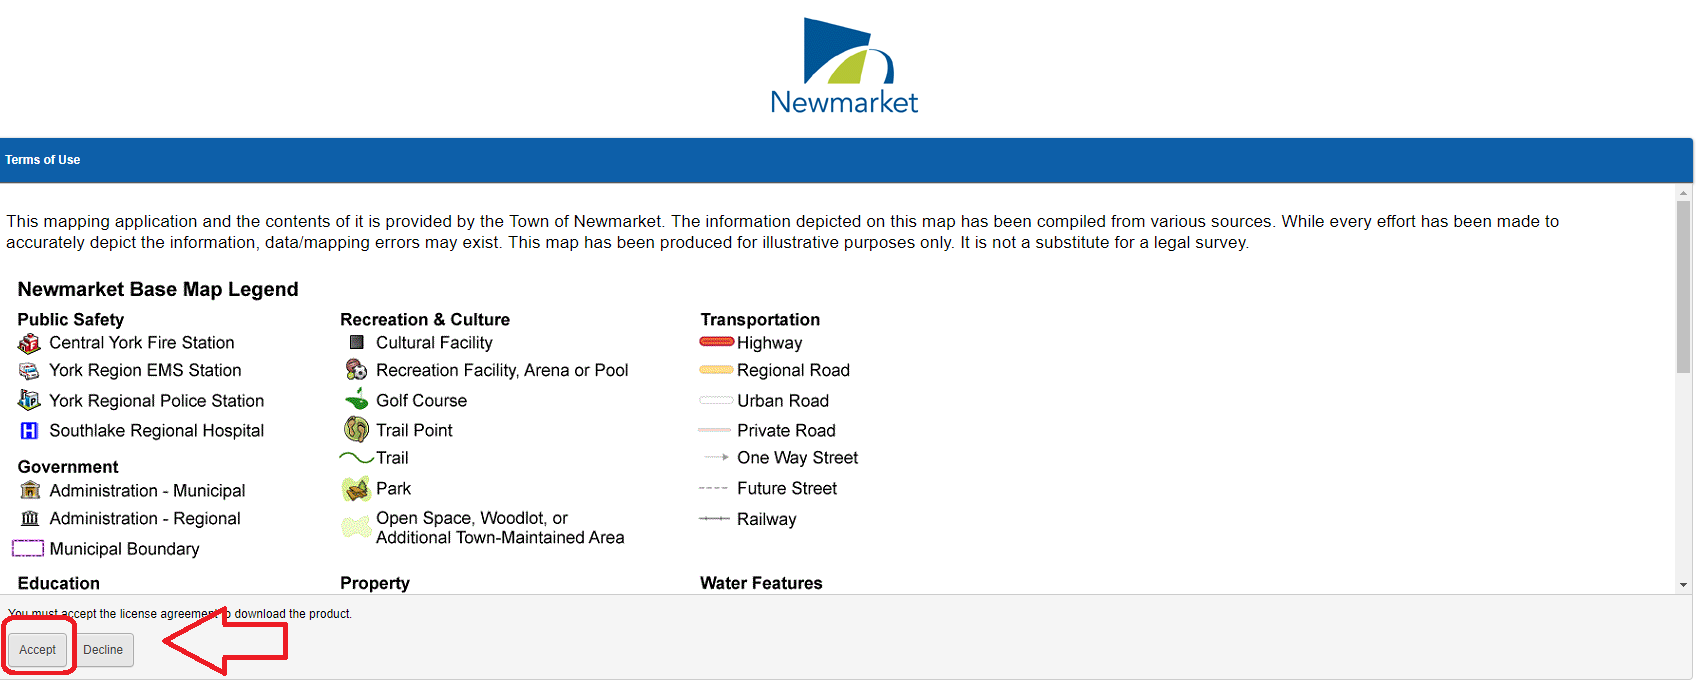 The disclaimer screen for the Navigate Newmarket map, highlighting the Continue button in the bottom left.